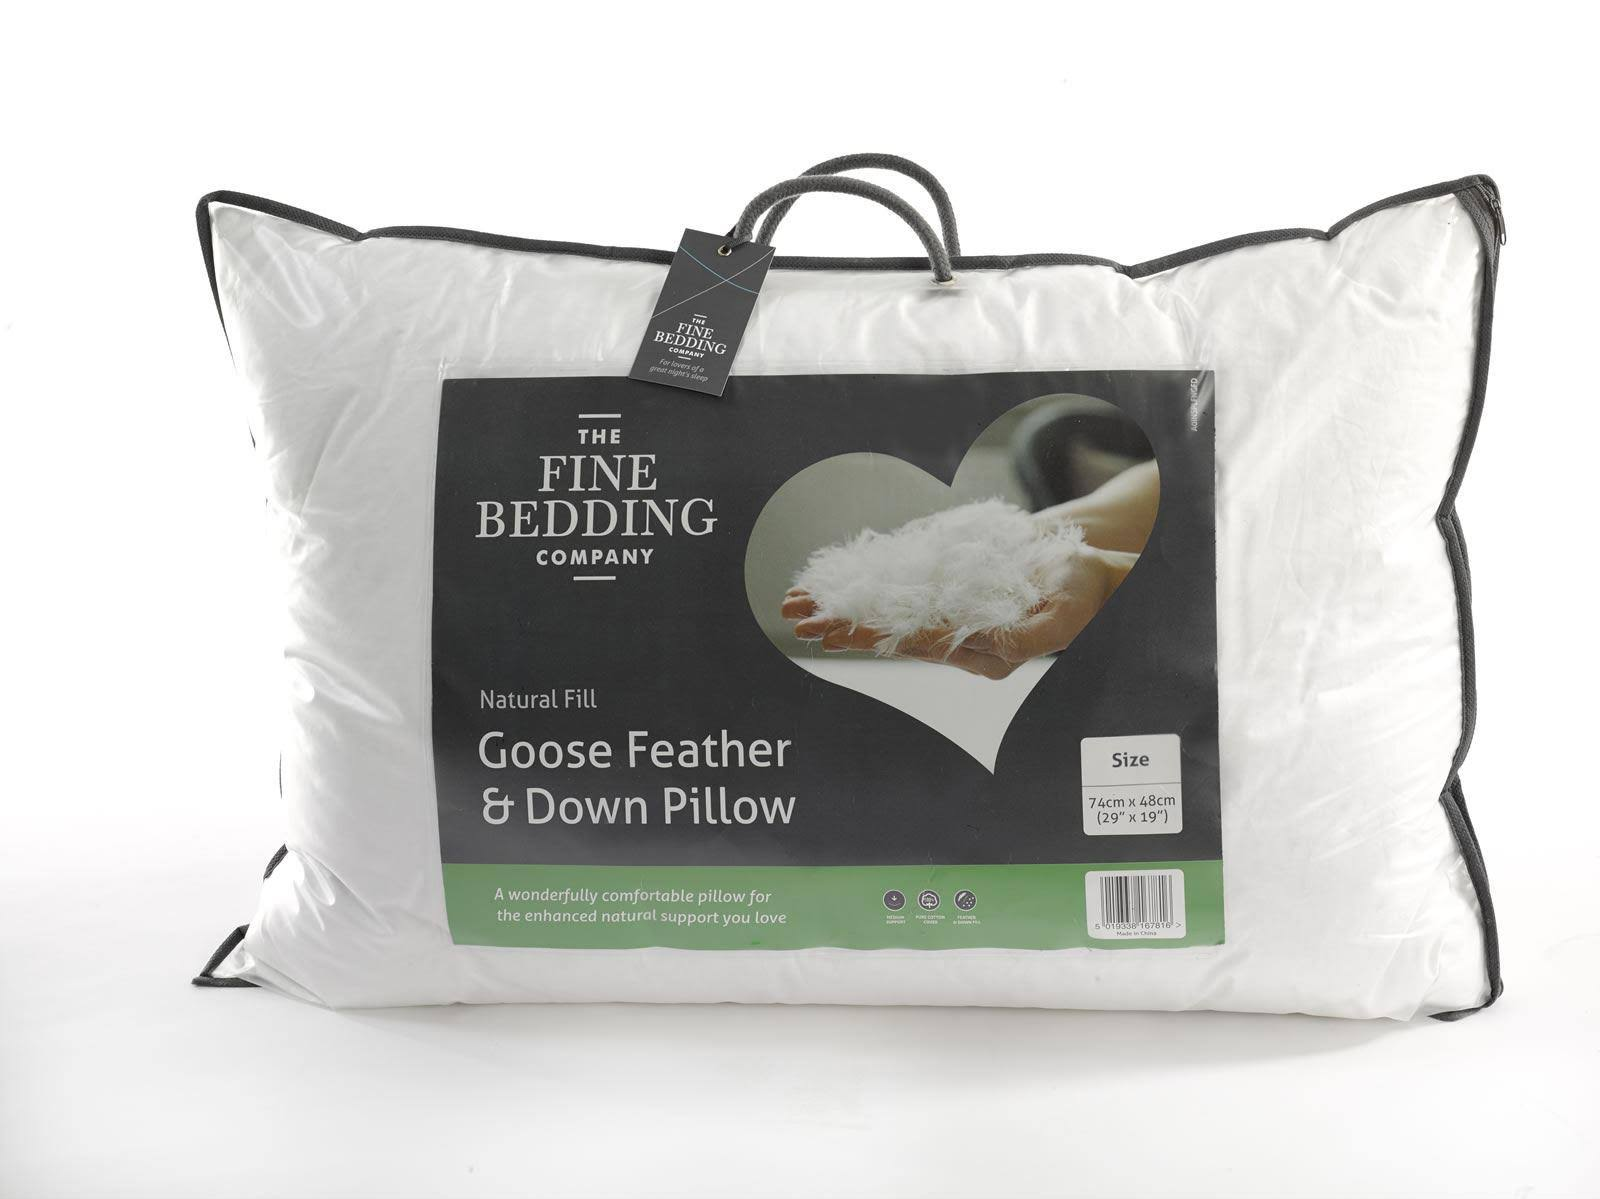 The Fine Bedding Company - Goose Feather & Down Pillow